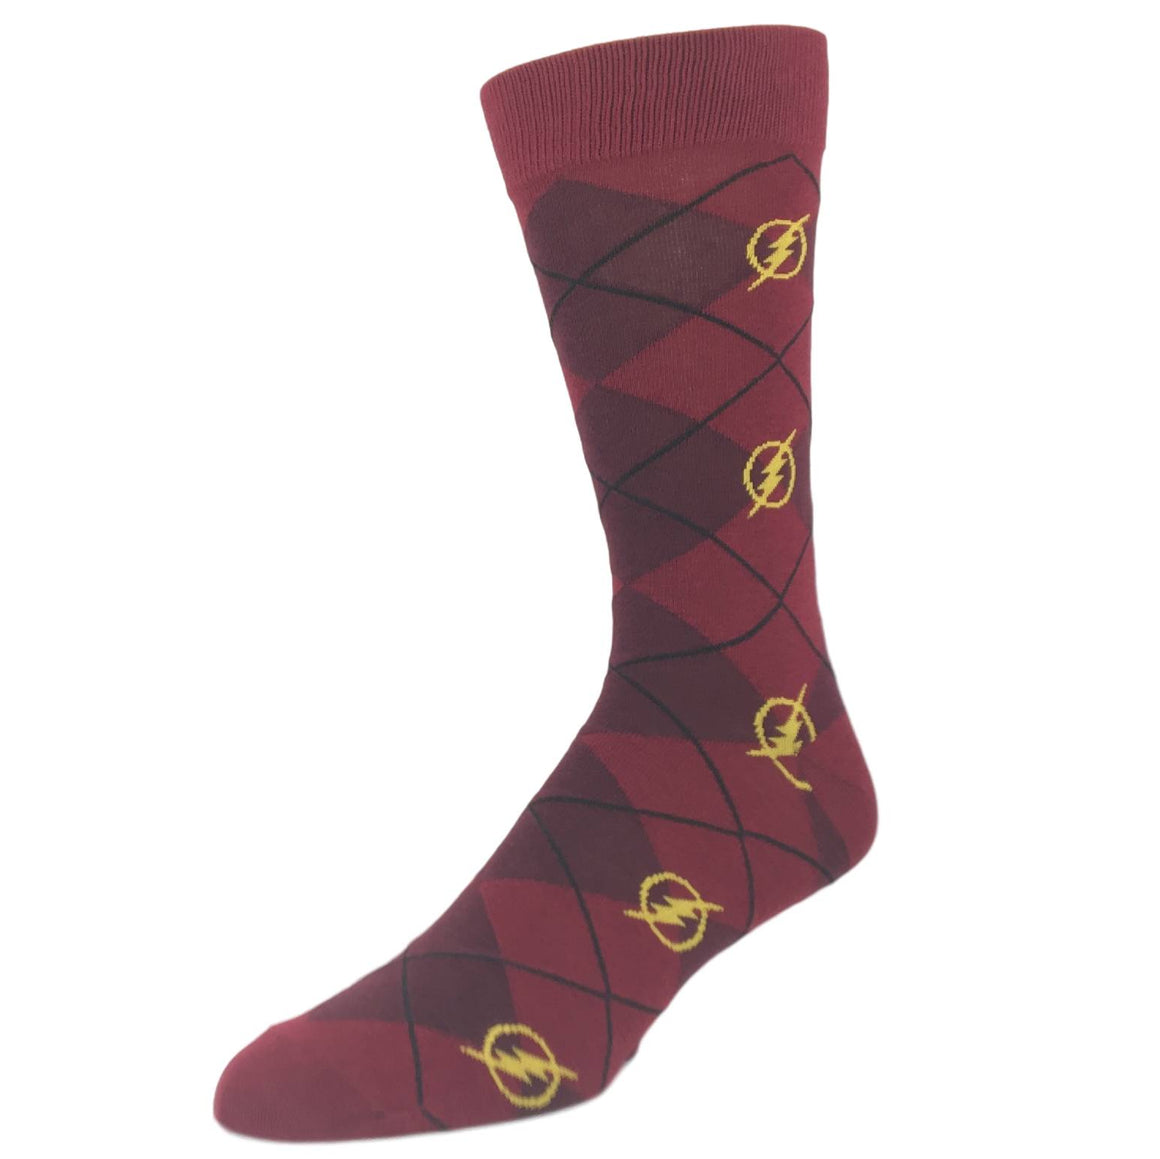 DC Comics Flash Superhero Dress Socks - The Sock Spot